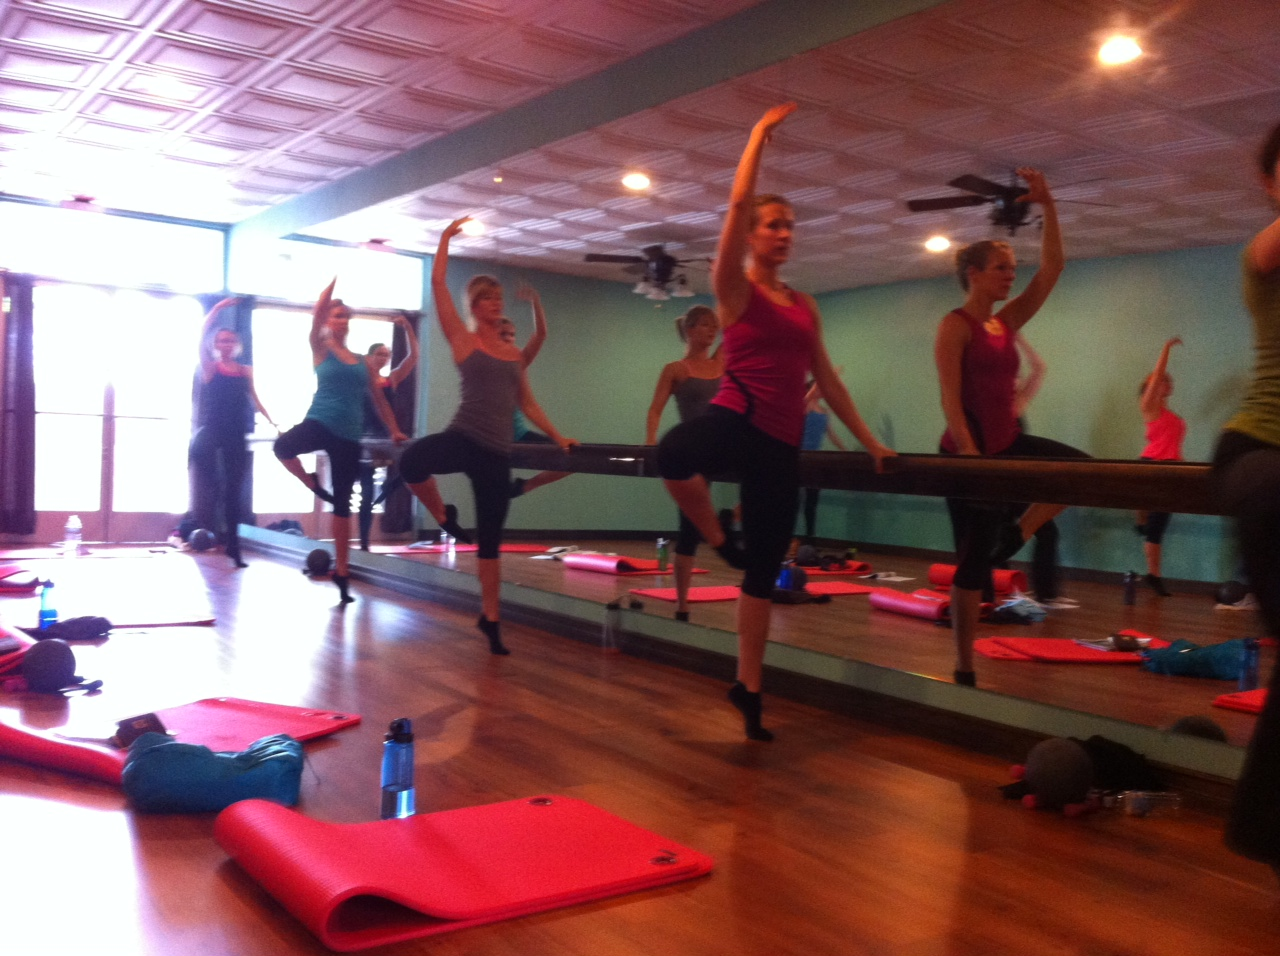 Xtend barre instructor training shaped for fitness exercise 1betcityfo Choice Image